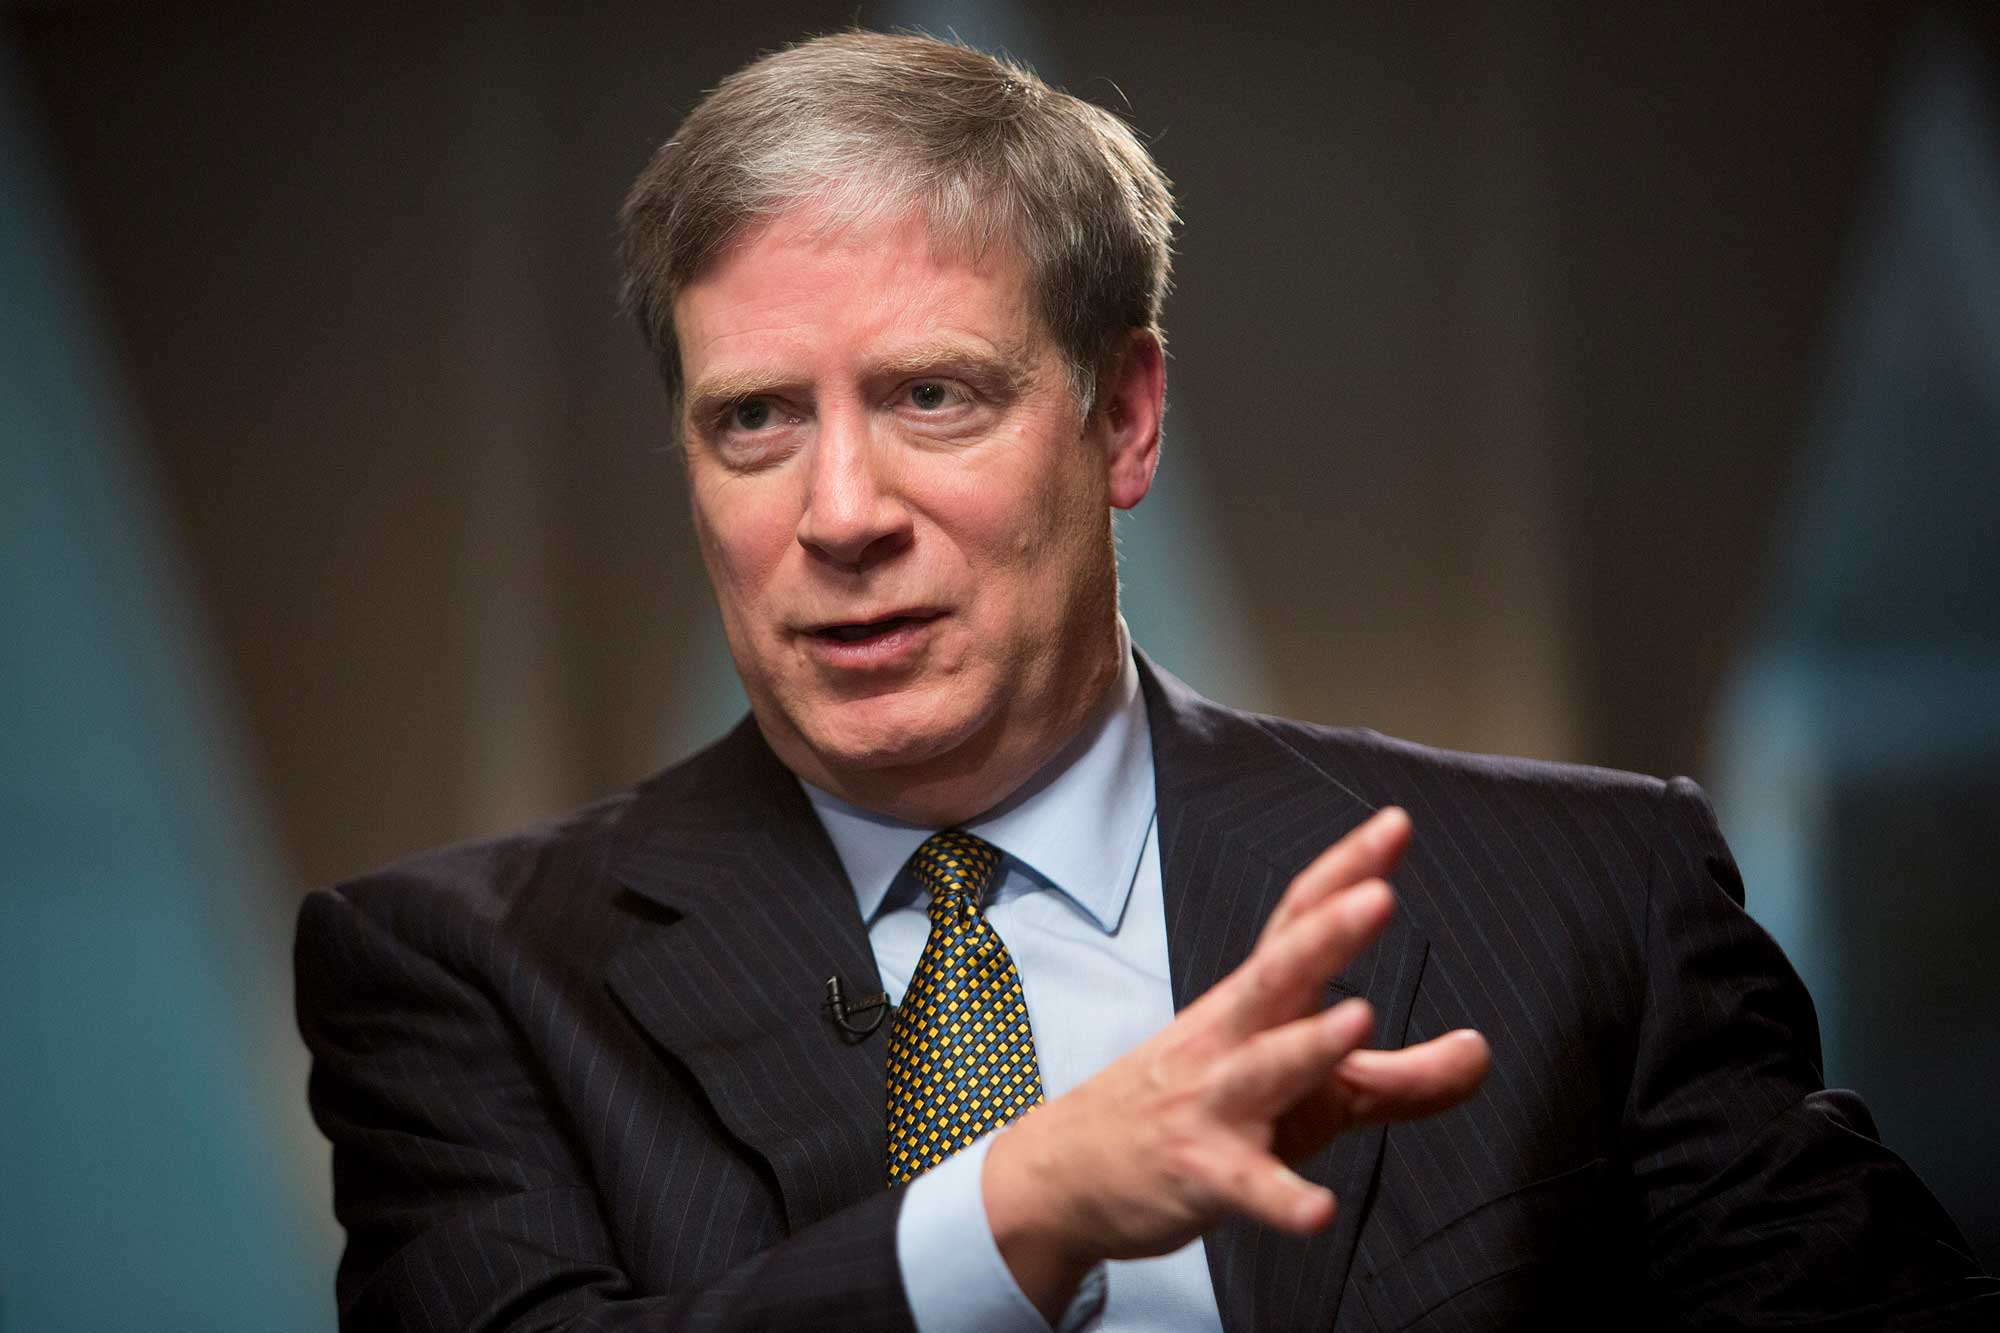 Stanley Druckenmiller sold everything and bought Treasurys after Trump's tweet threatening China